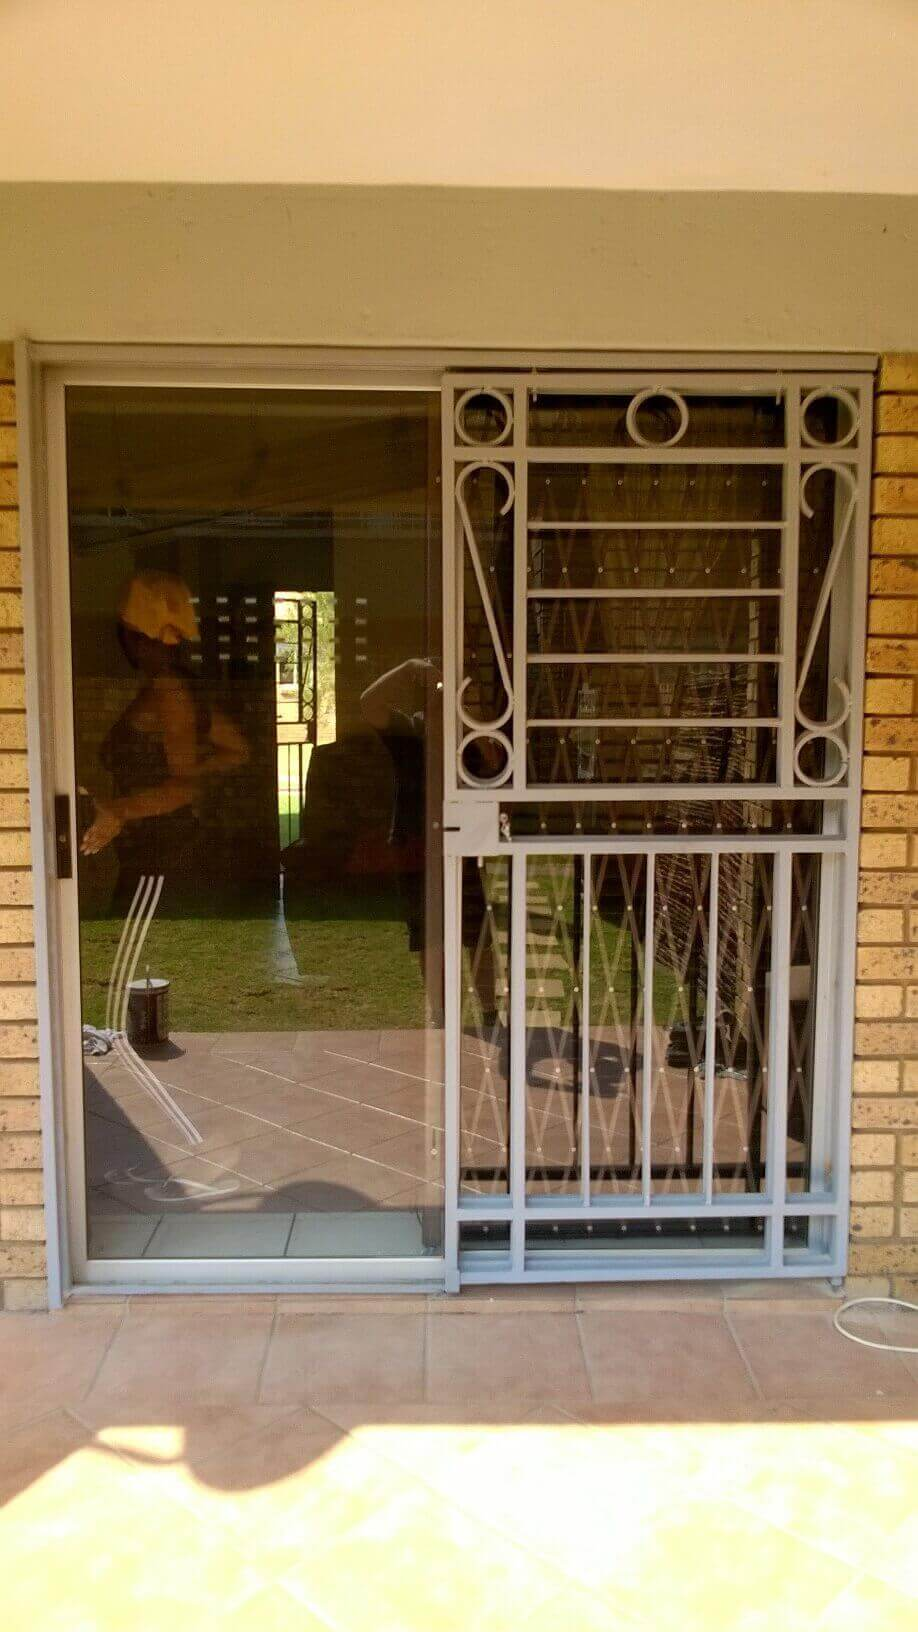 Security Gates And Burglar Proofing For Improved Security